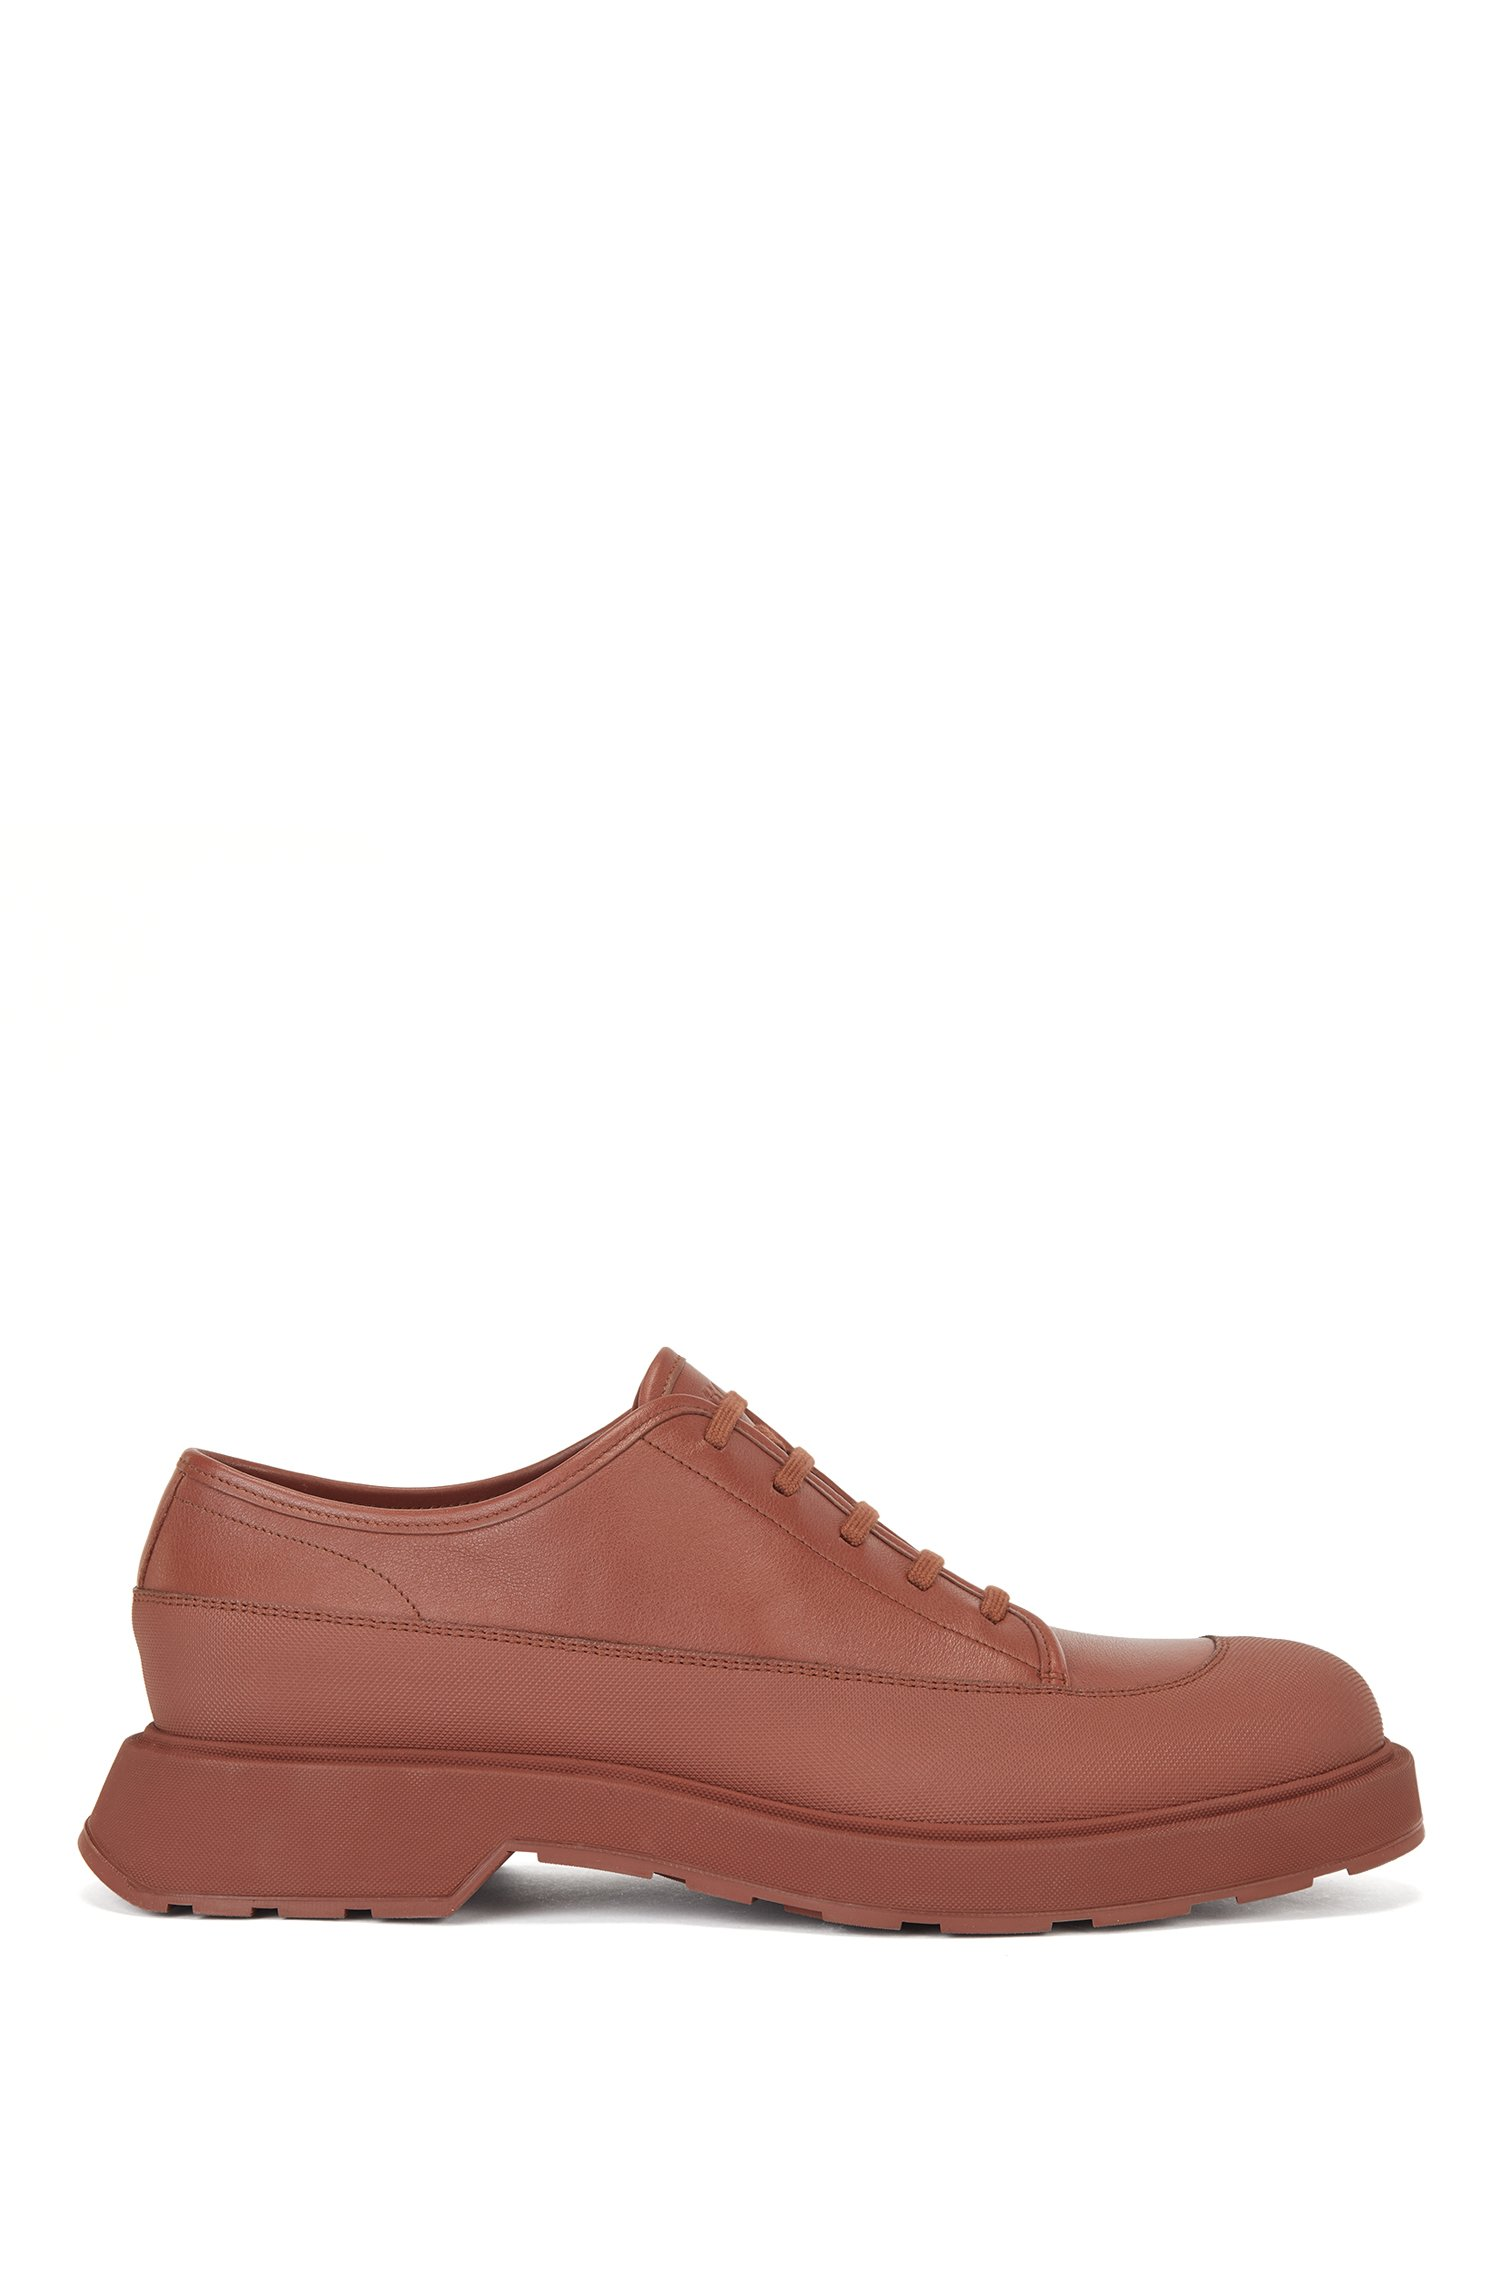 Hybrid Derby shoes in calf leather with lug sole, Brown